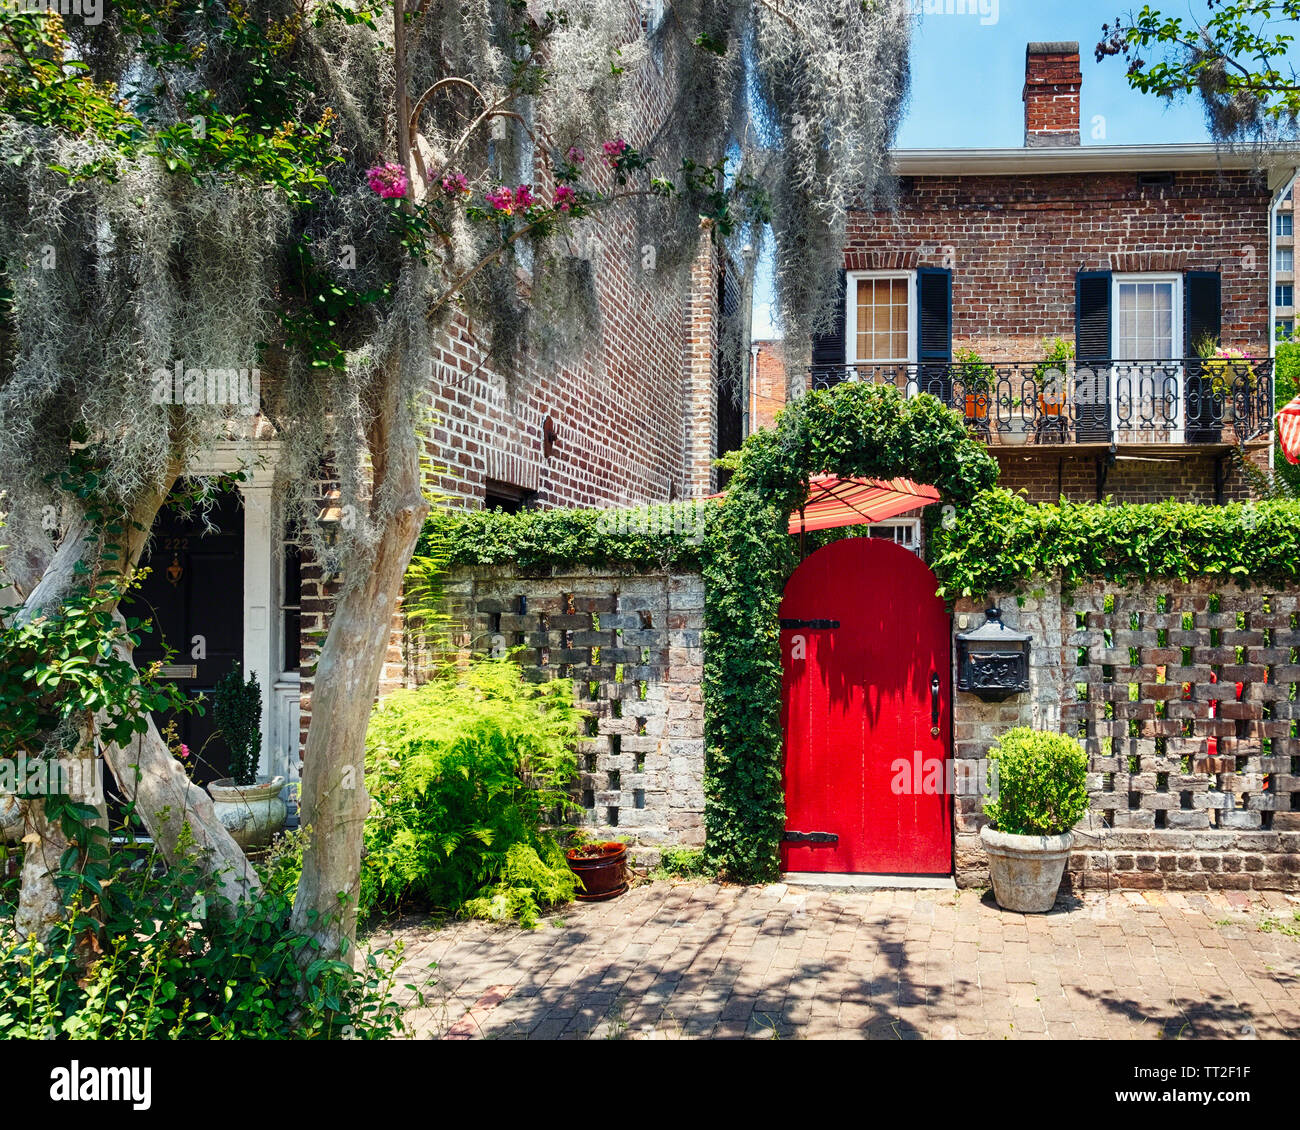 Downtown Street Scene with a Red Door and Historic House, Savannah, Georgia Stock Photo